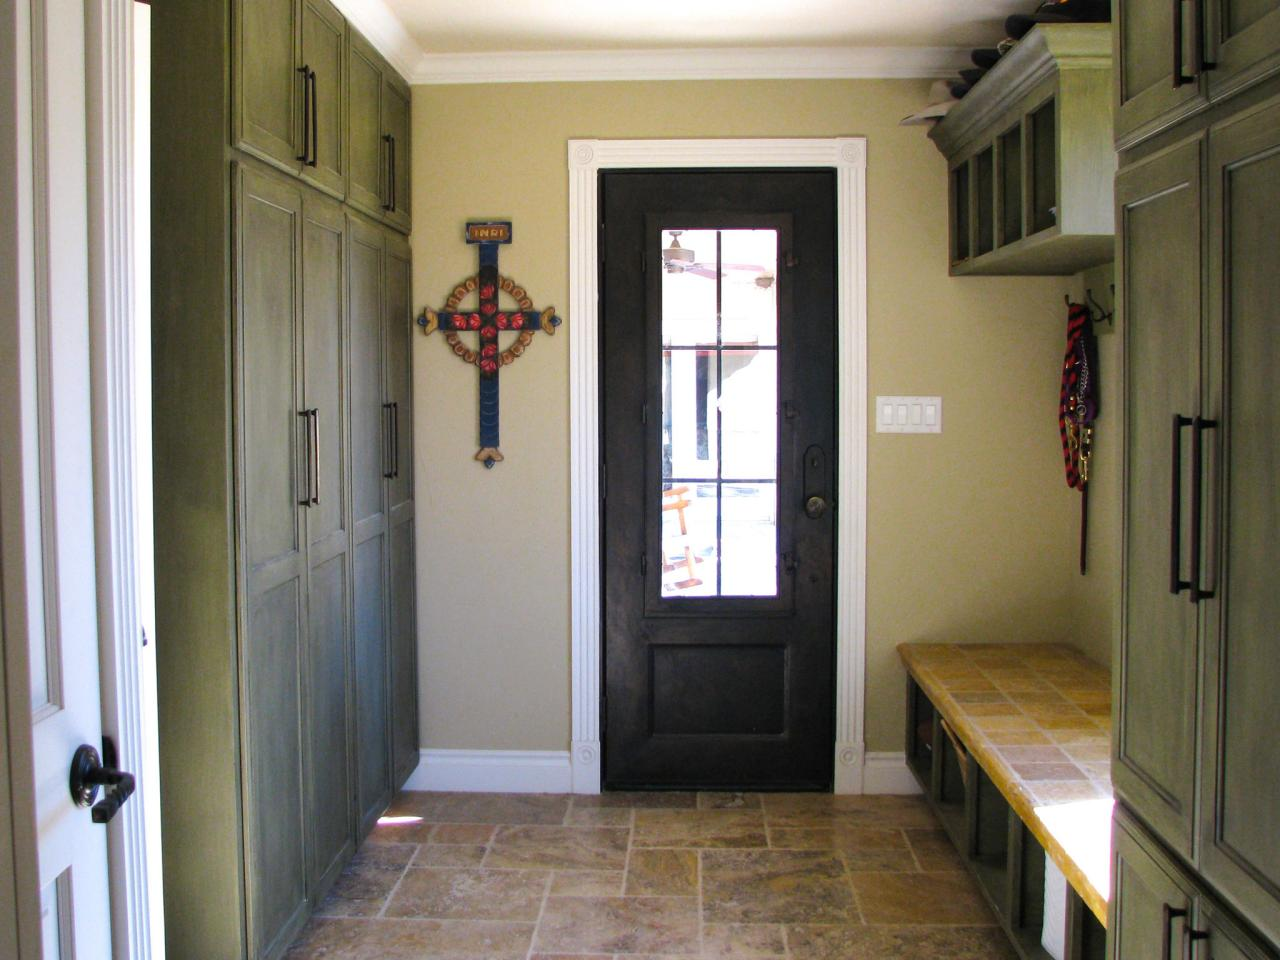 Mud Room Flooring : Mudroom storage bench pictures options tips and ideas